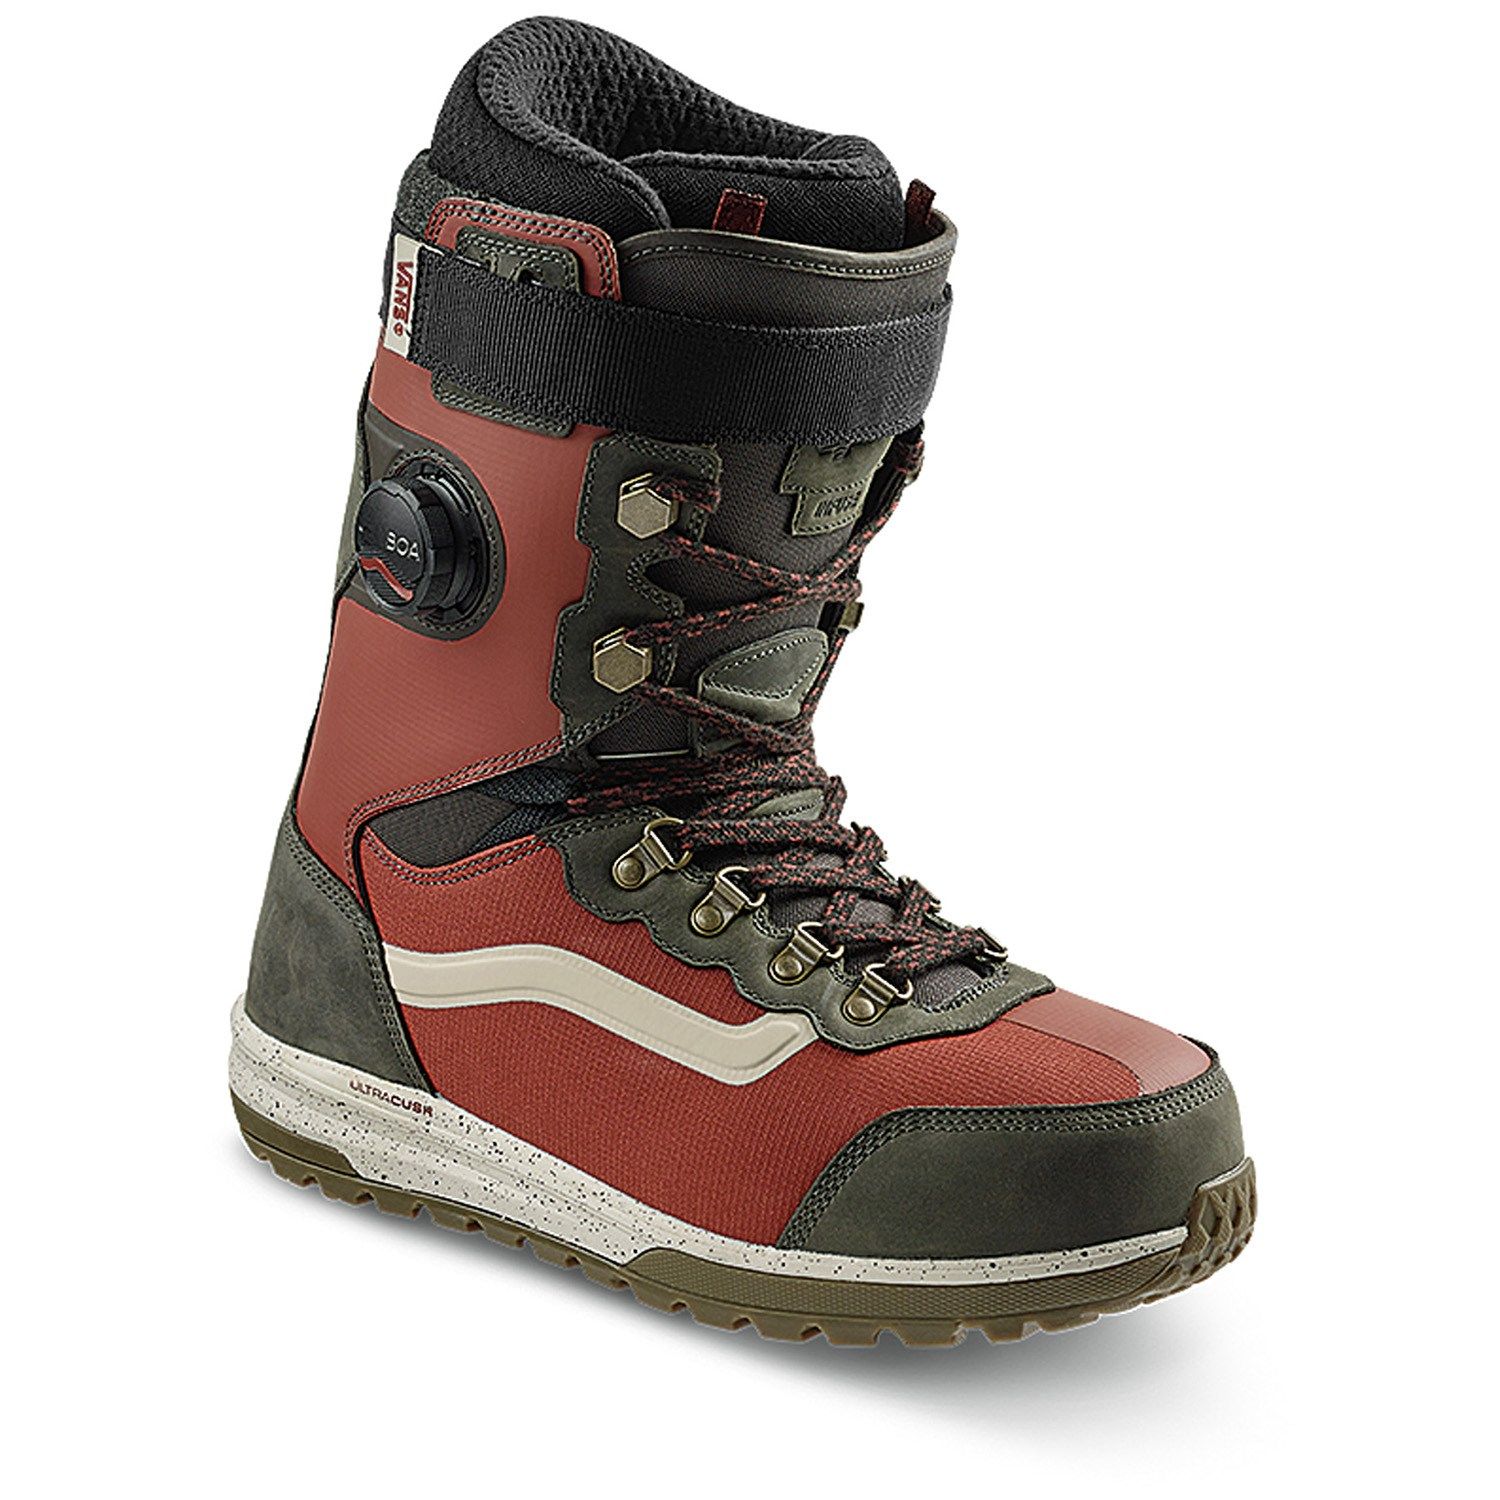 Vans Infuse Snowboard Boots 2021 | evo